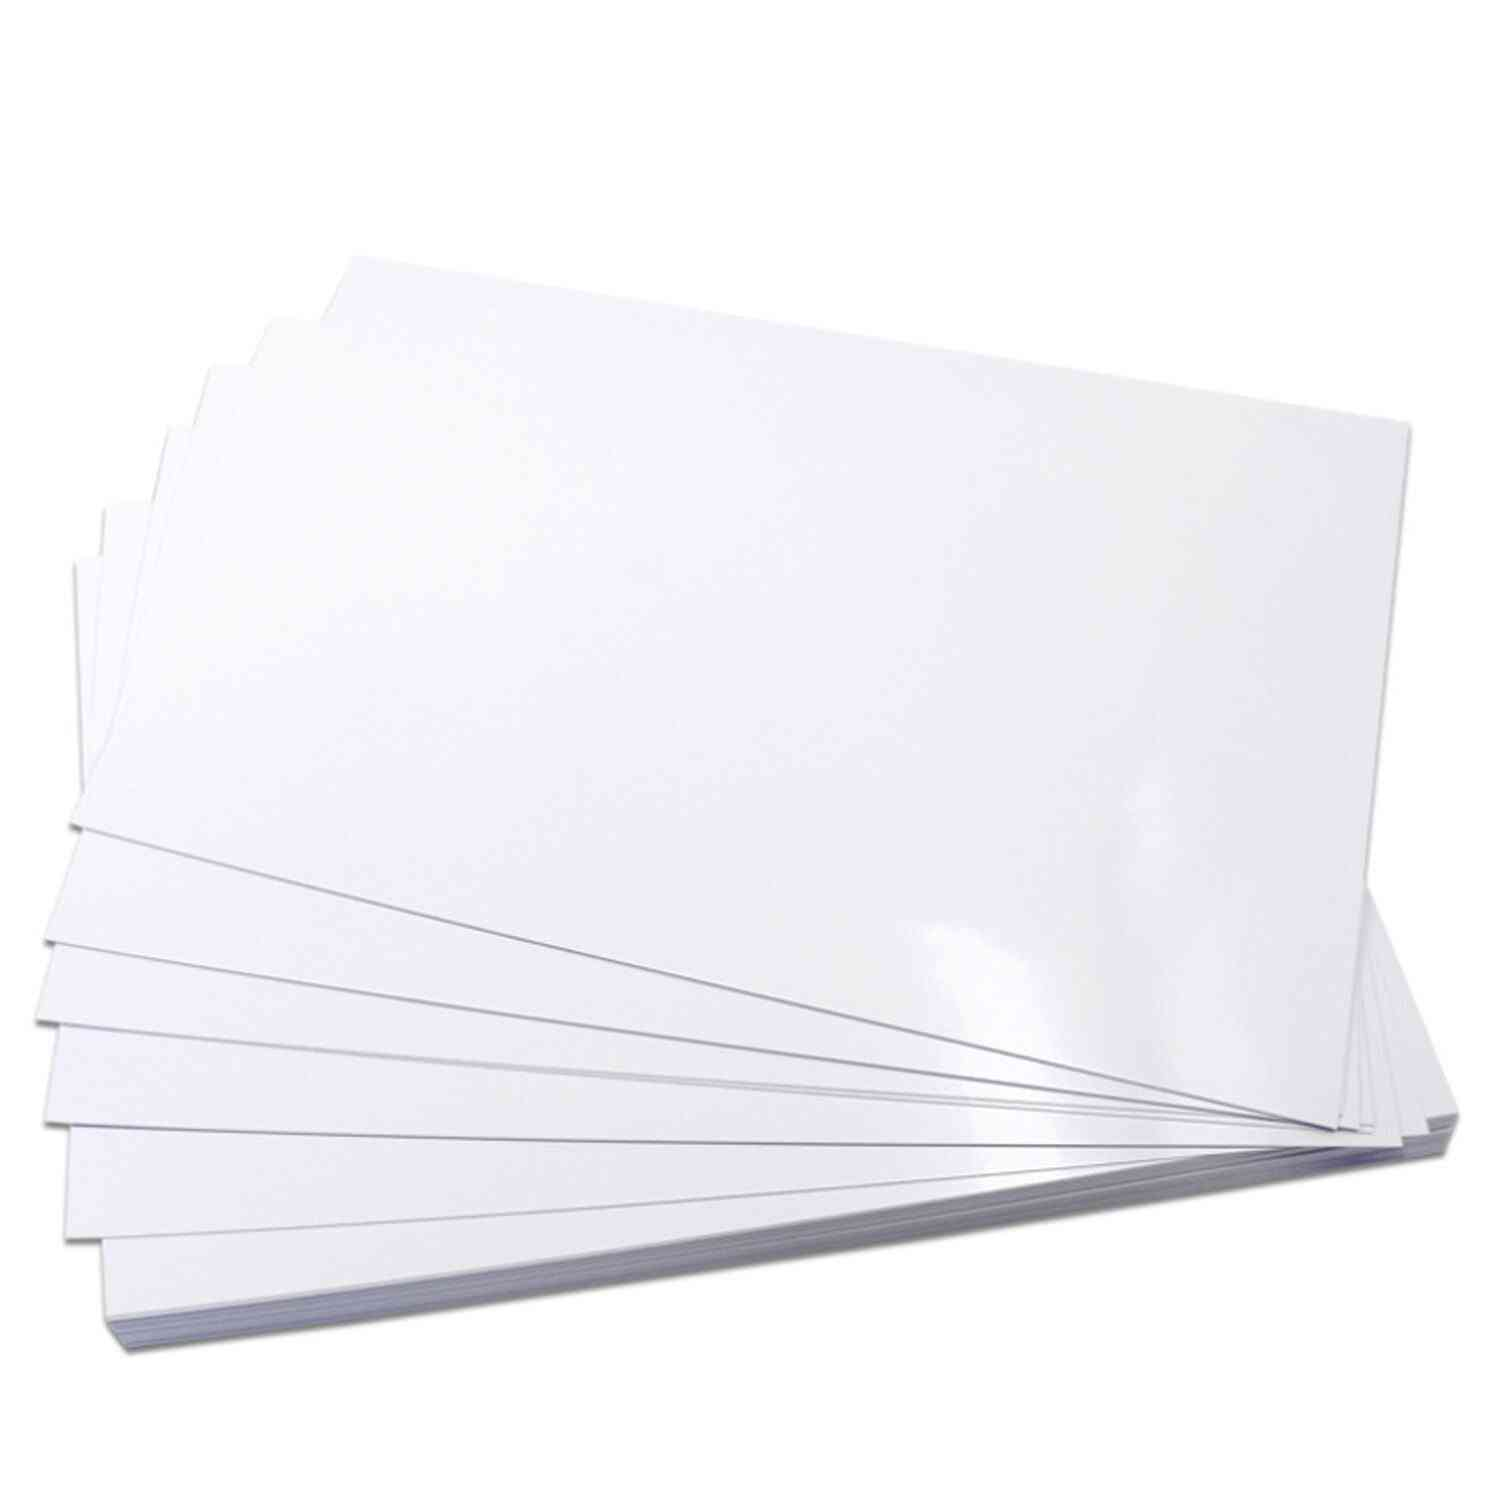 A4 Size 180g High Glossy Photo Papers